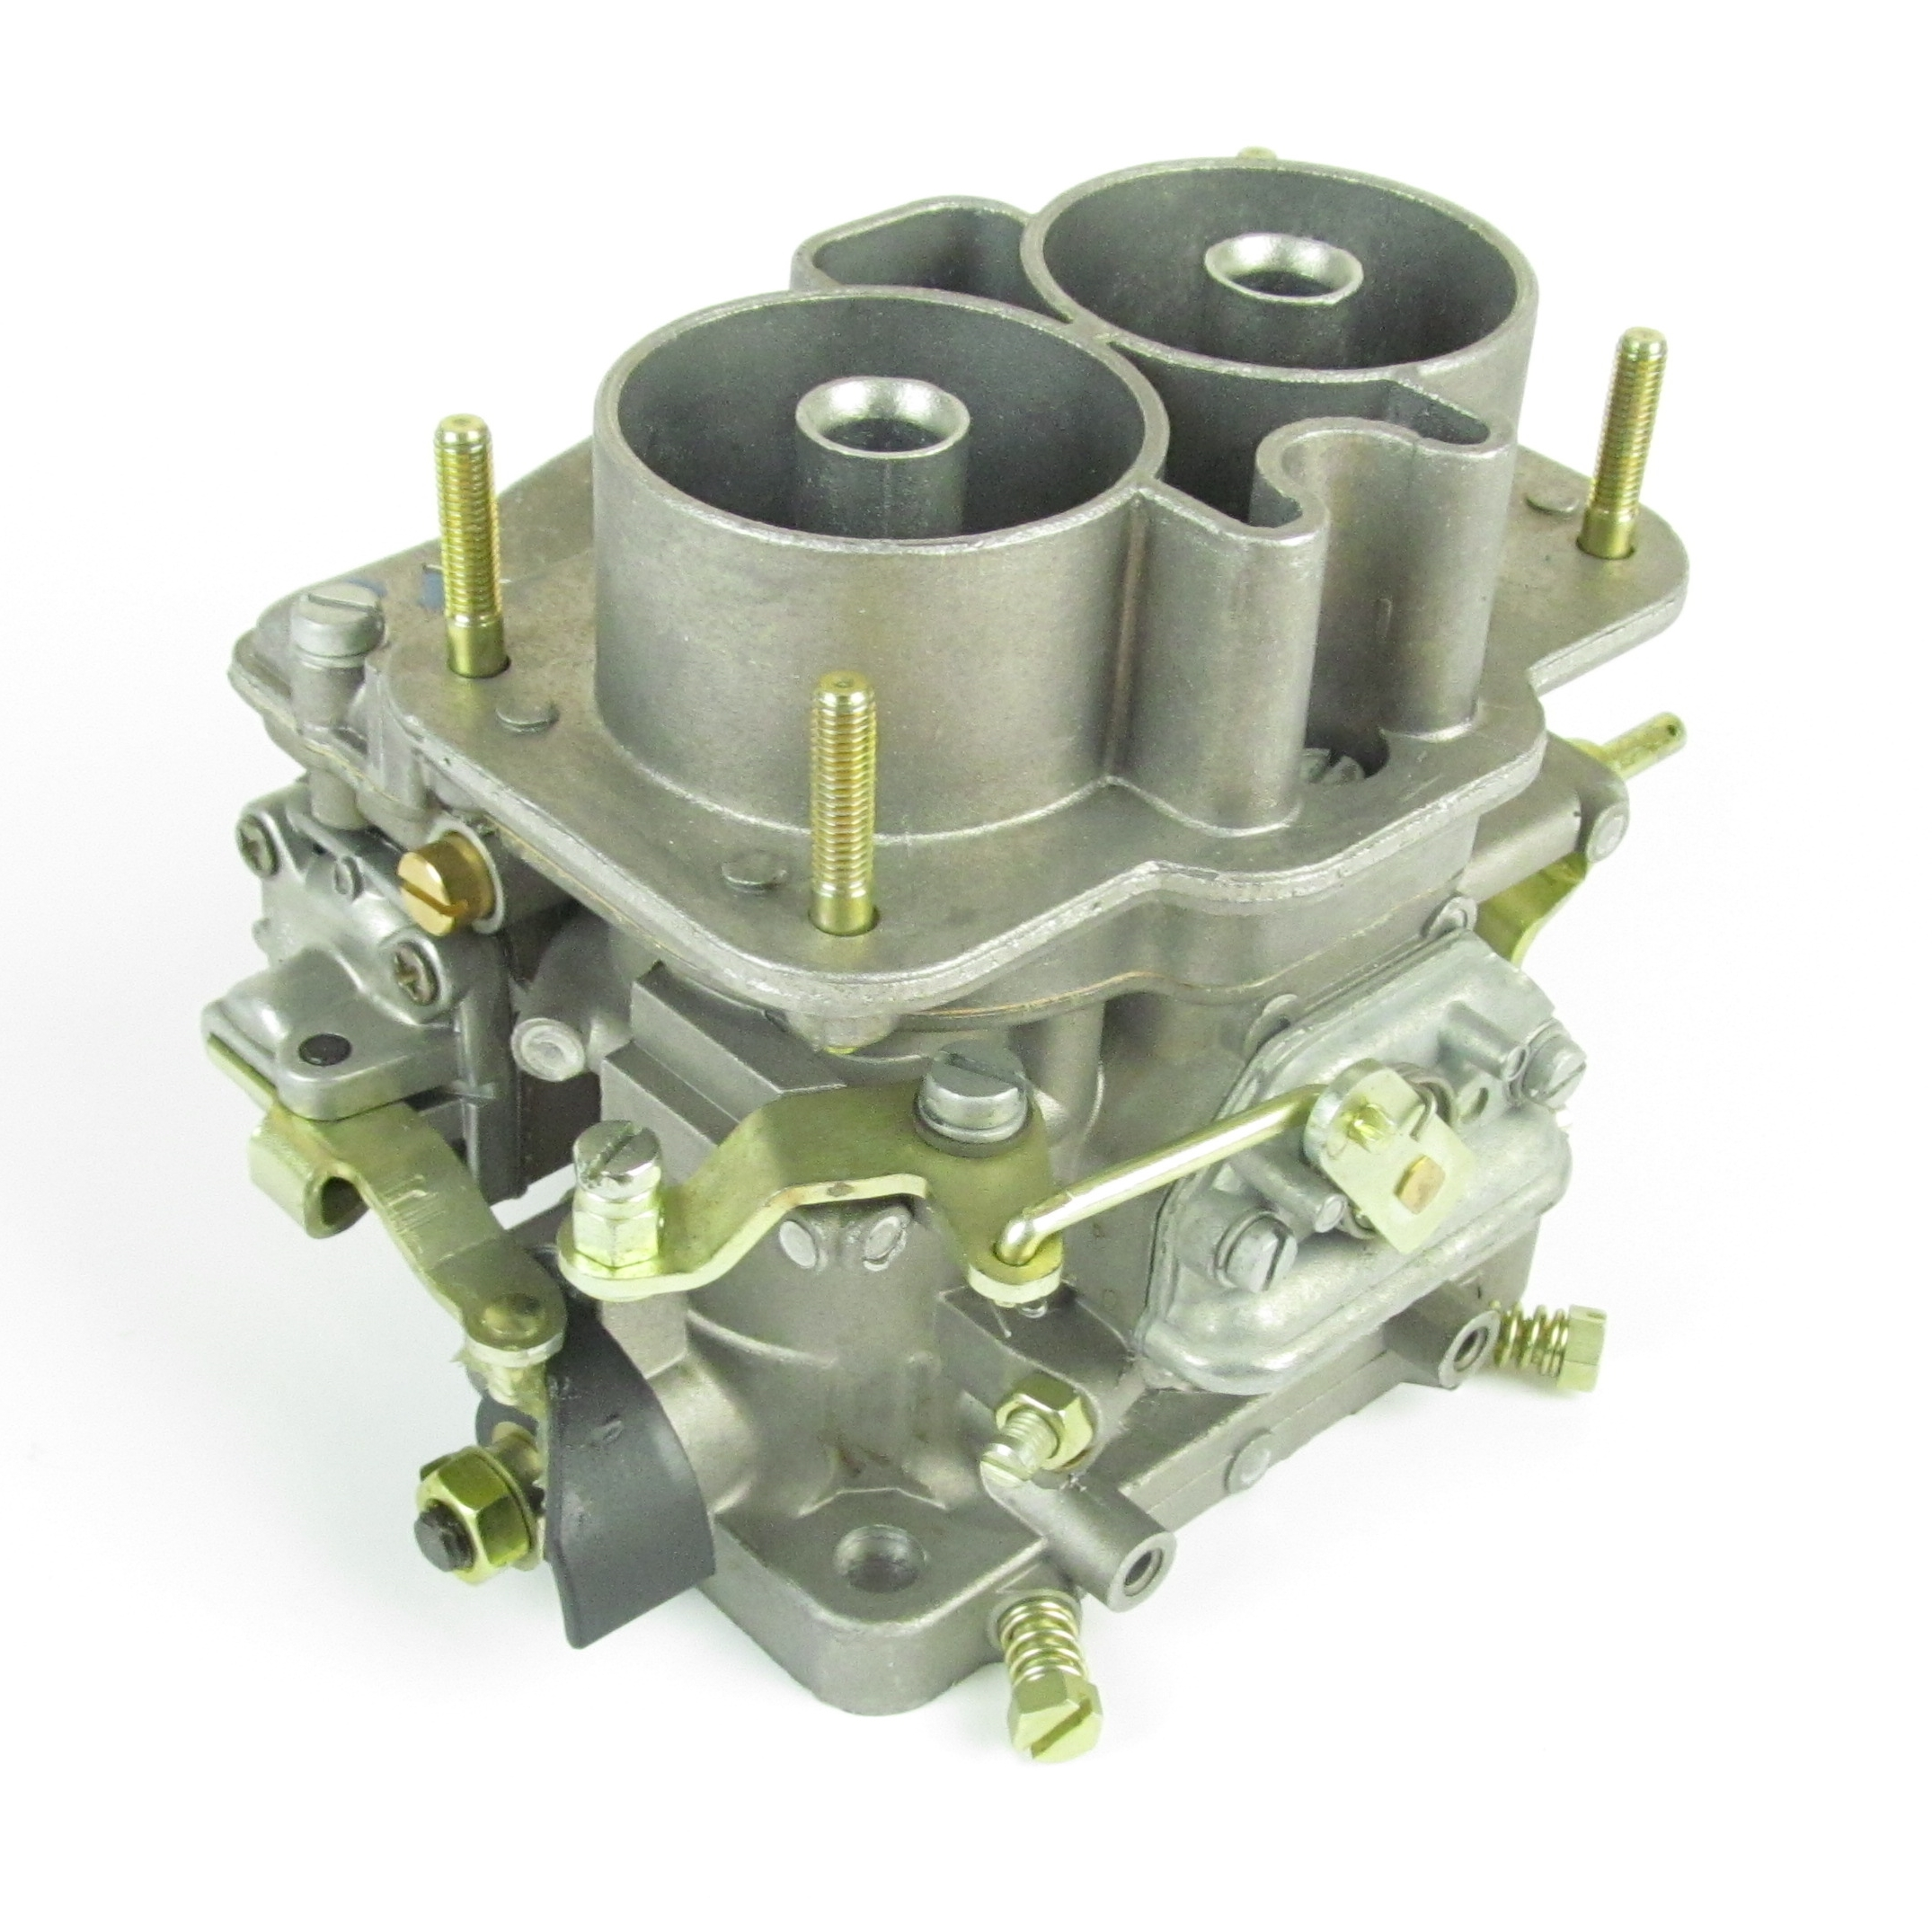 GENEREL WEBER 40 DCNF CARBURETTOR - FERRARI / FIAT / FORD / V6 / V8 ENGINES